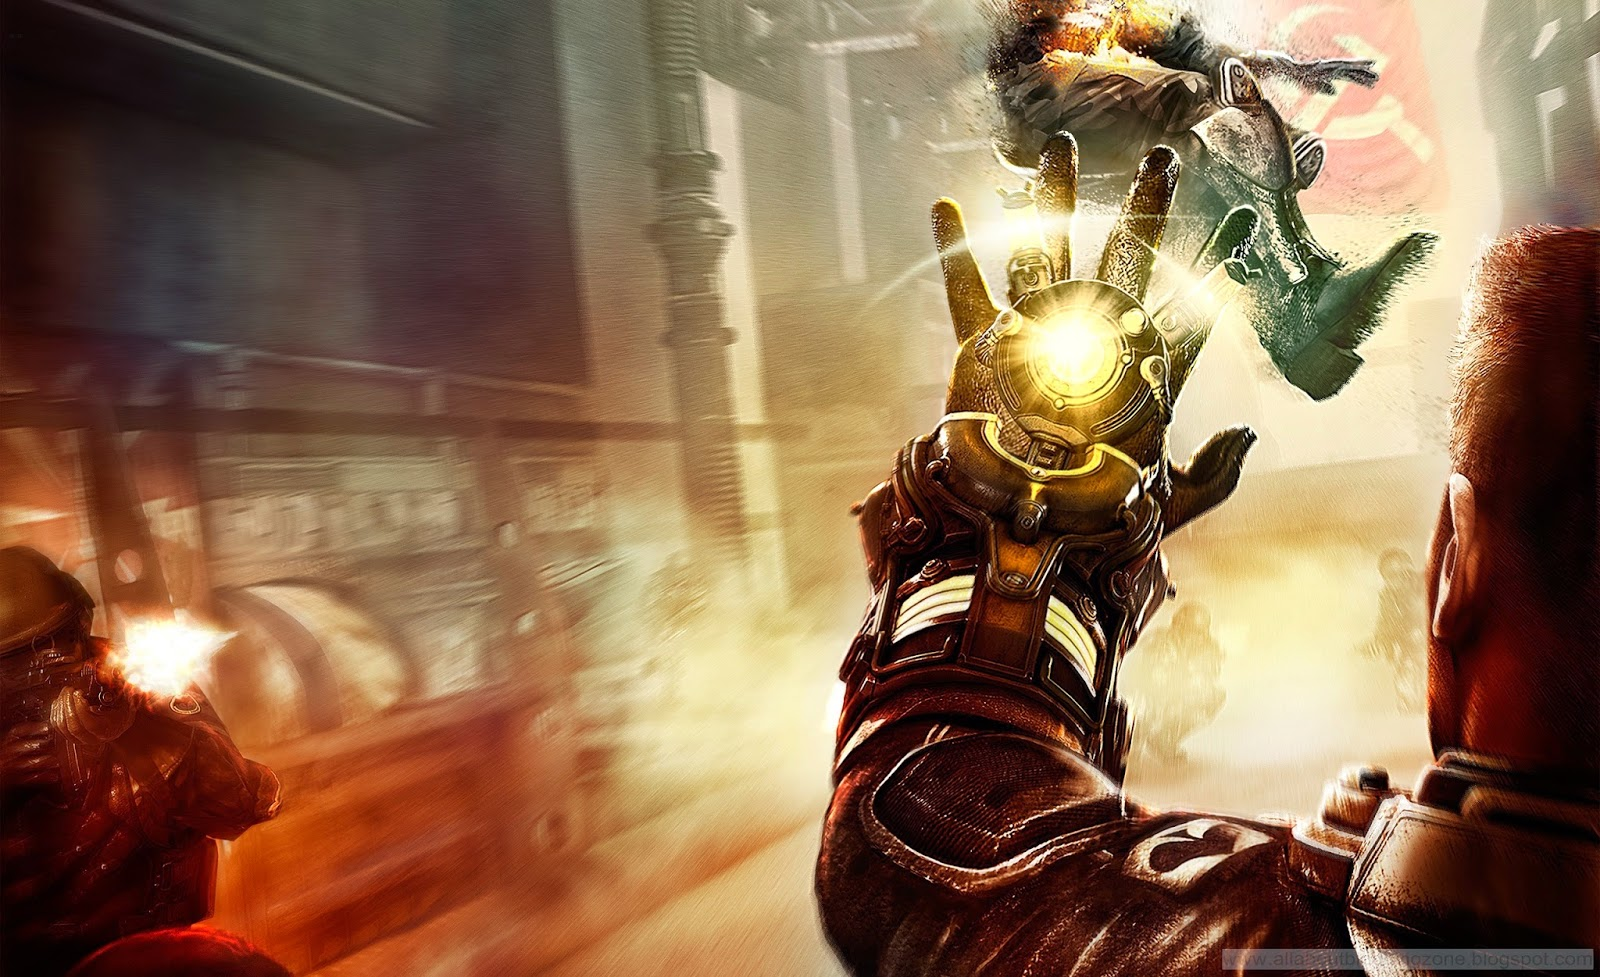 Games Wallpapers Hd Games Wallpaper...